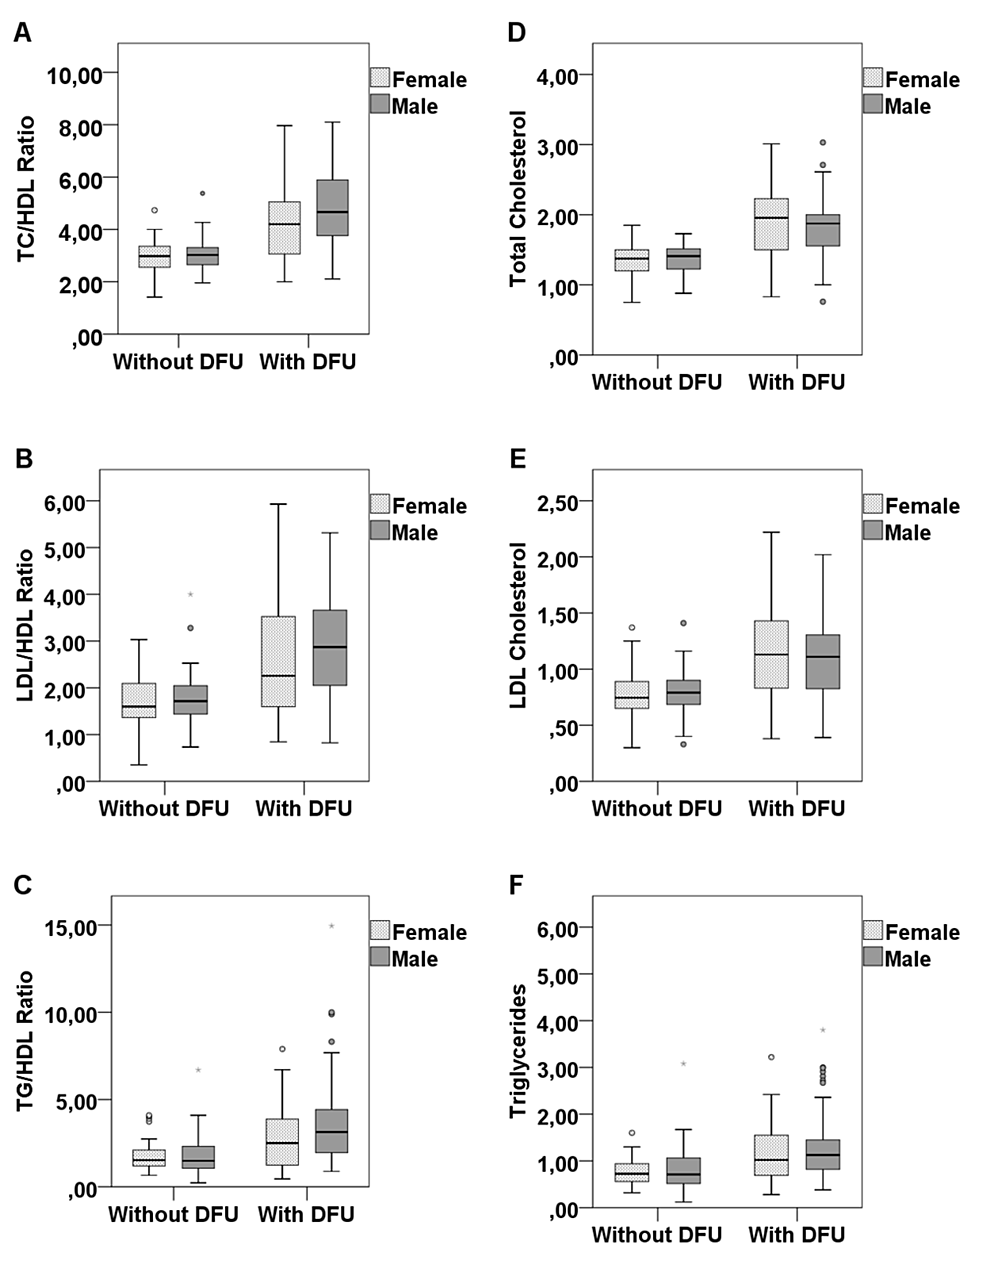 Comparison-of-lipid-ratios-levels-between-patients-with-and-without-DFU-according-to-their-gender.